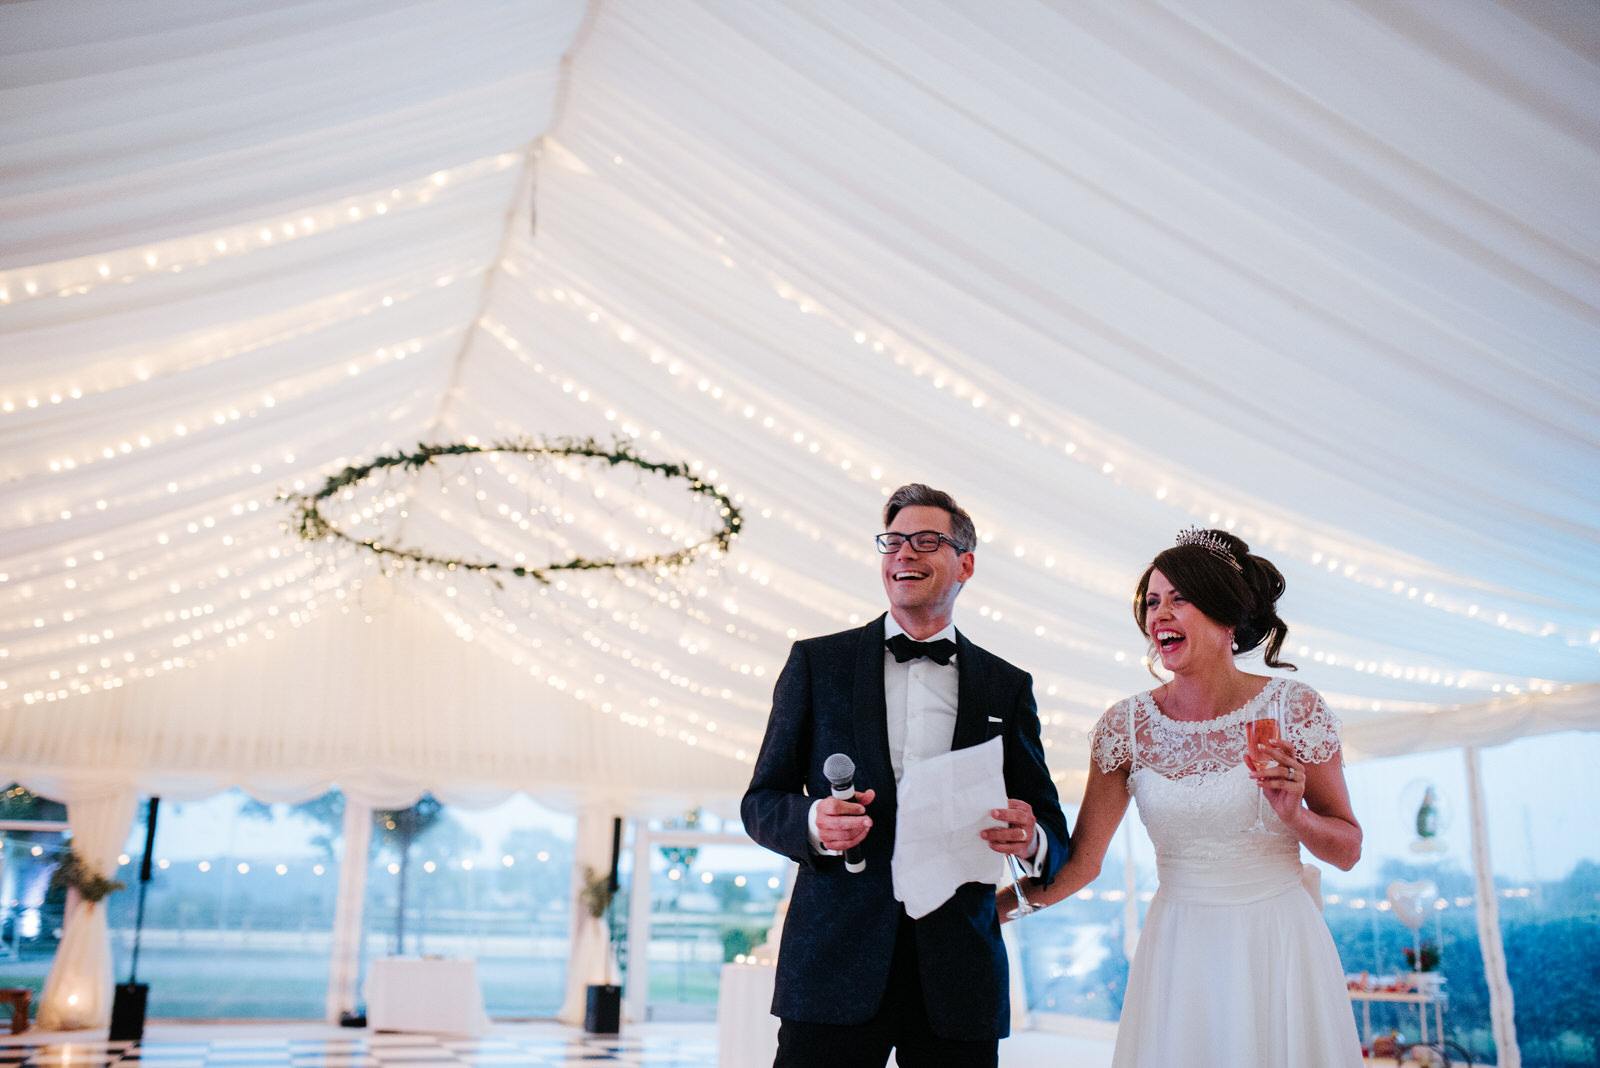 Bride and Groom laugh into the distance as Groom concludes speec